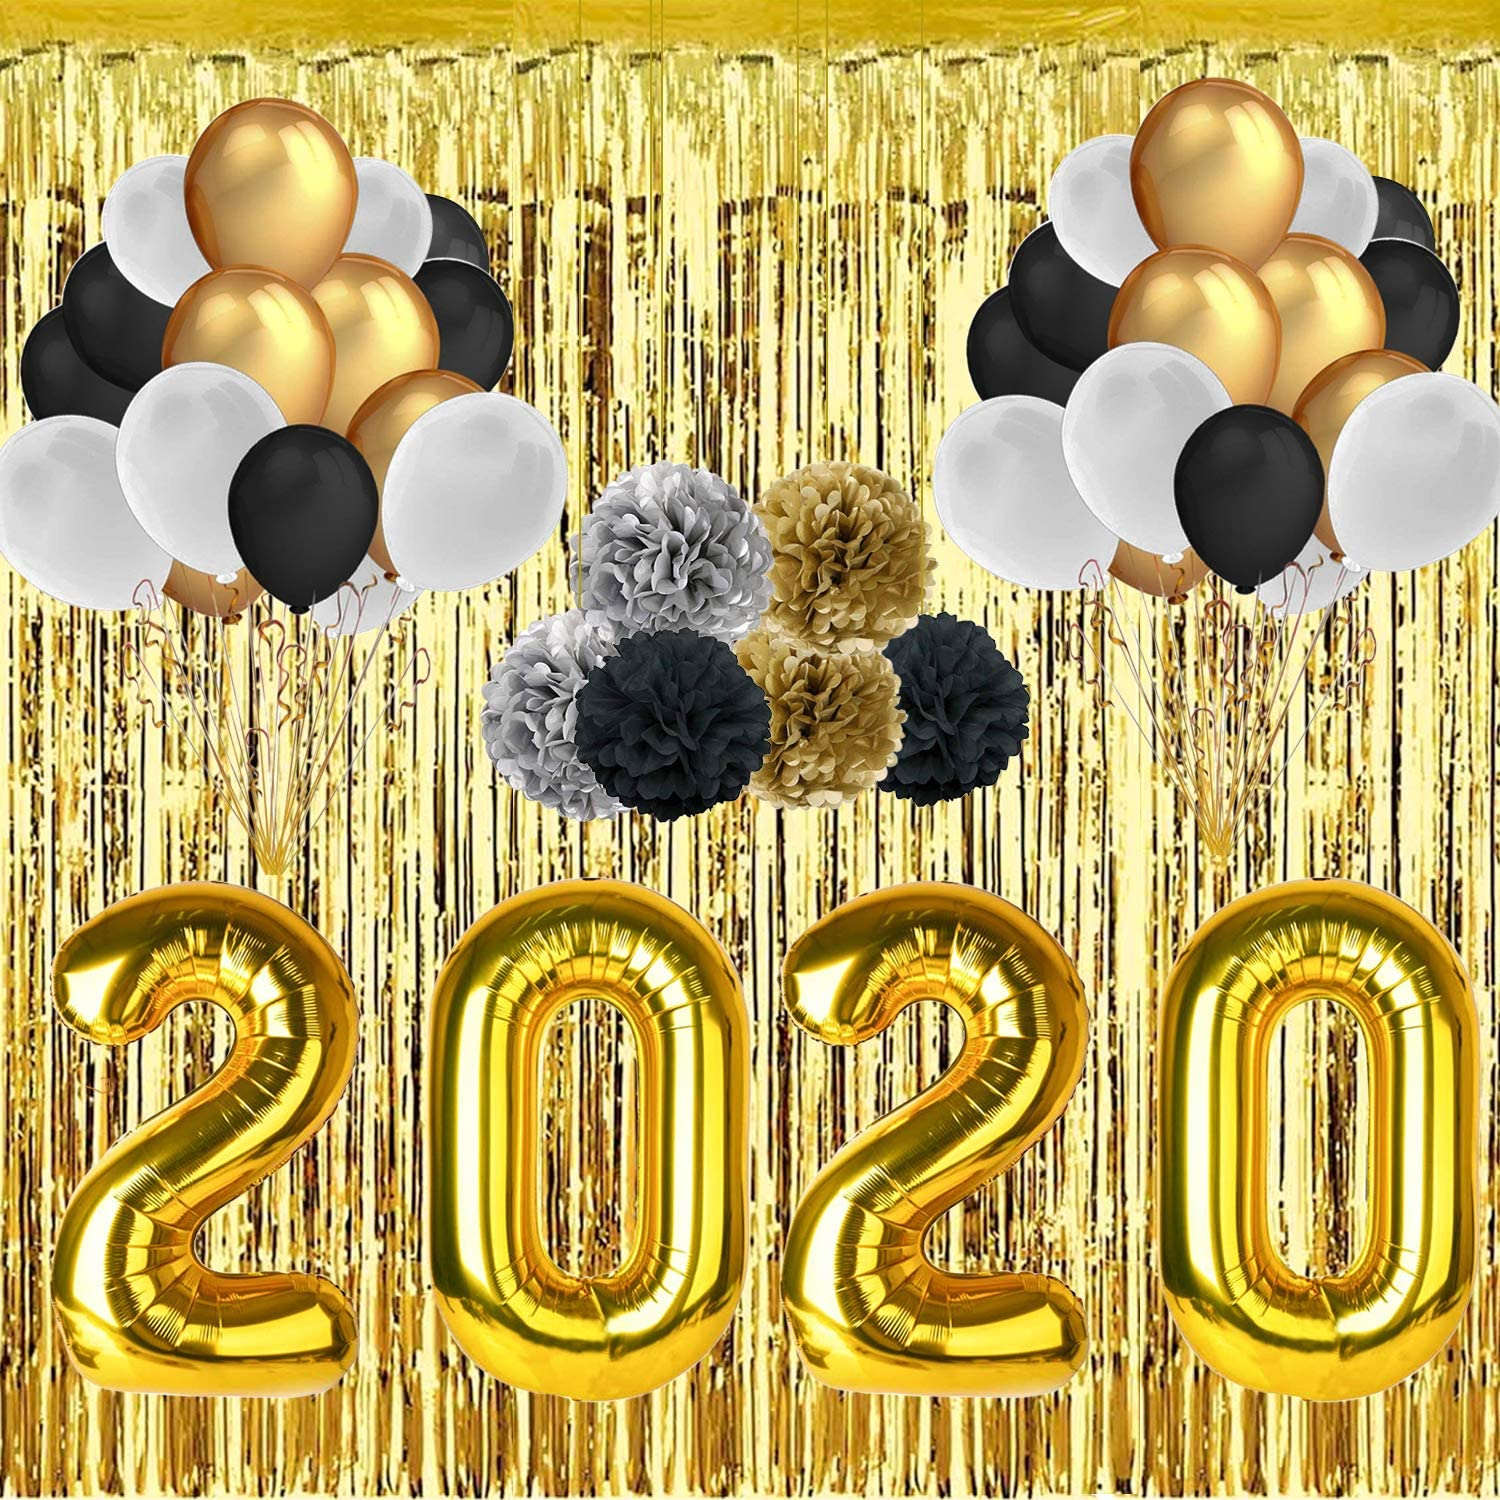 2020 Graduration Party Supplies - 40'' 2020 Foil Gold Balloons - 30 Pieces 12'' Latex Balloon - 118'' Foil Gold Rain Curtain - 6 Pieces 10'' Paper Flower Ball 2020 Graduation Decorations